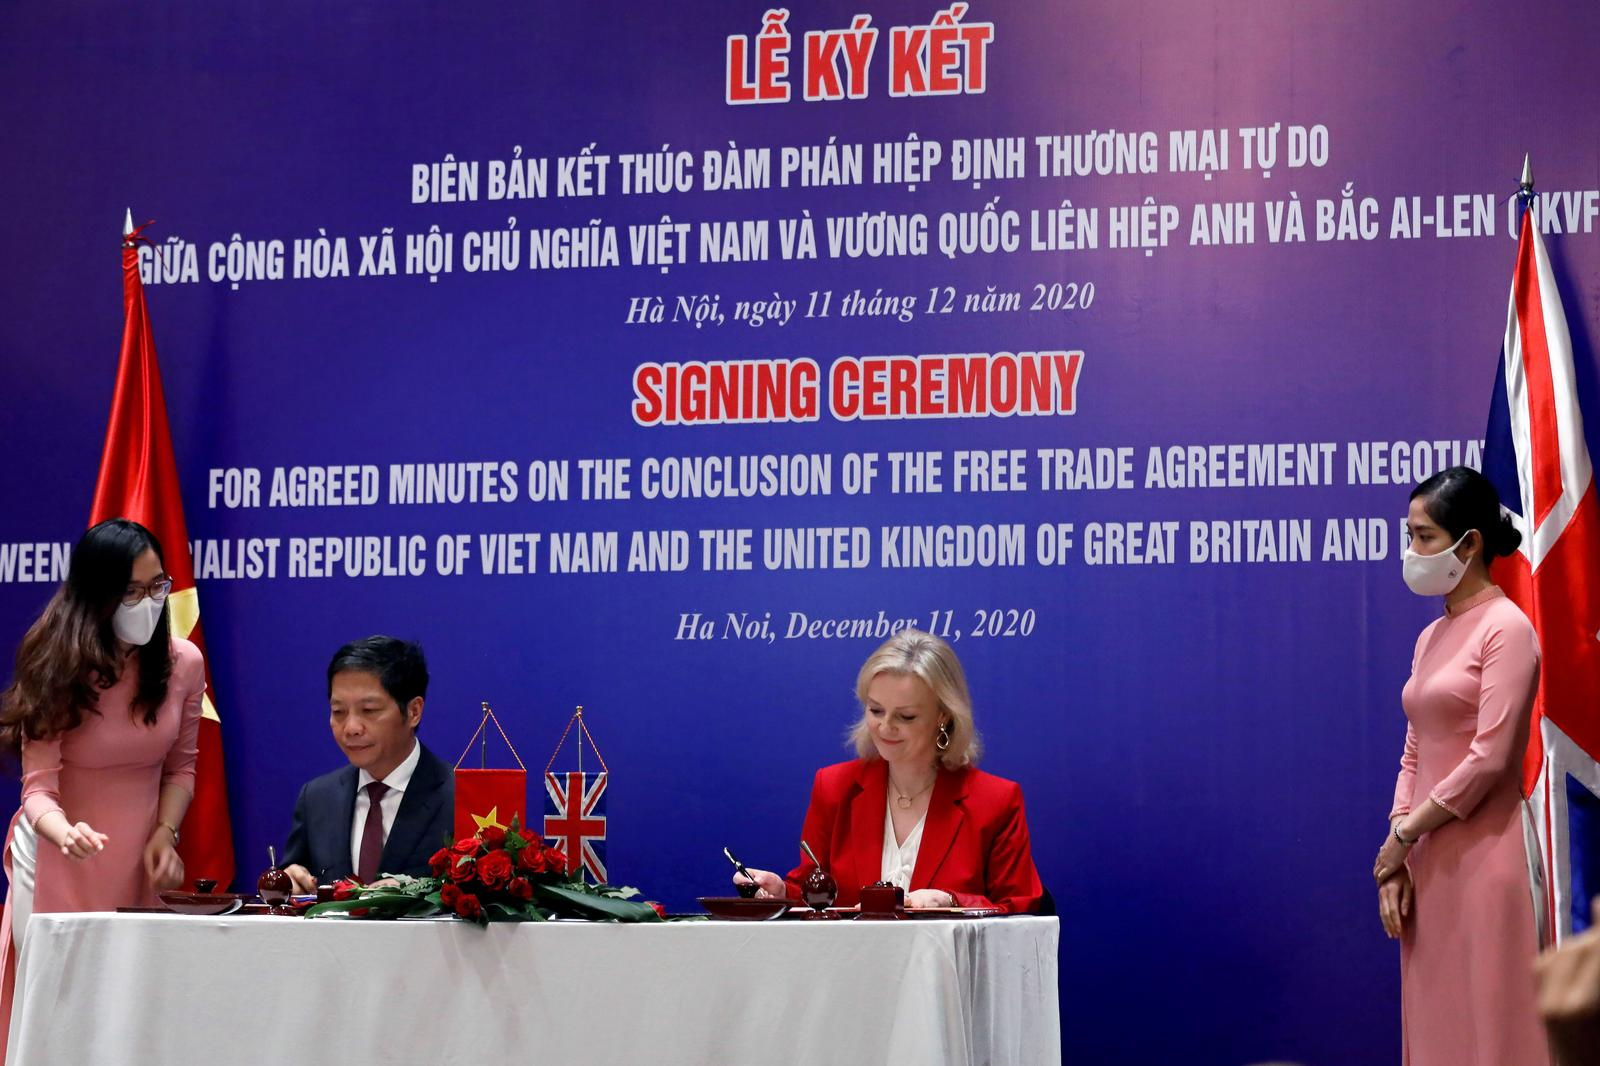 Vietnam, Britain sign free trade deal, to take effect Dec. 31